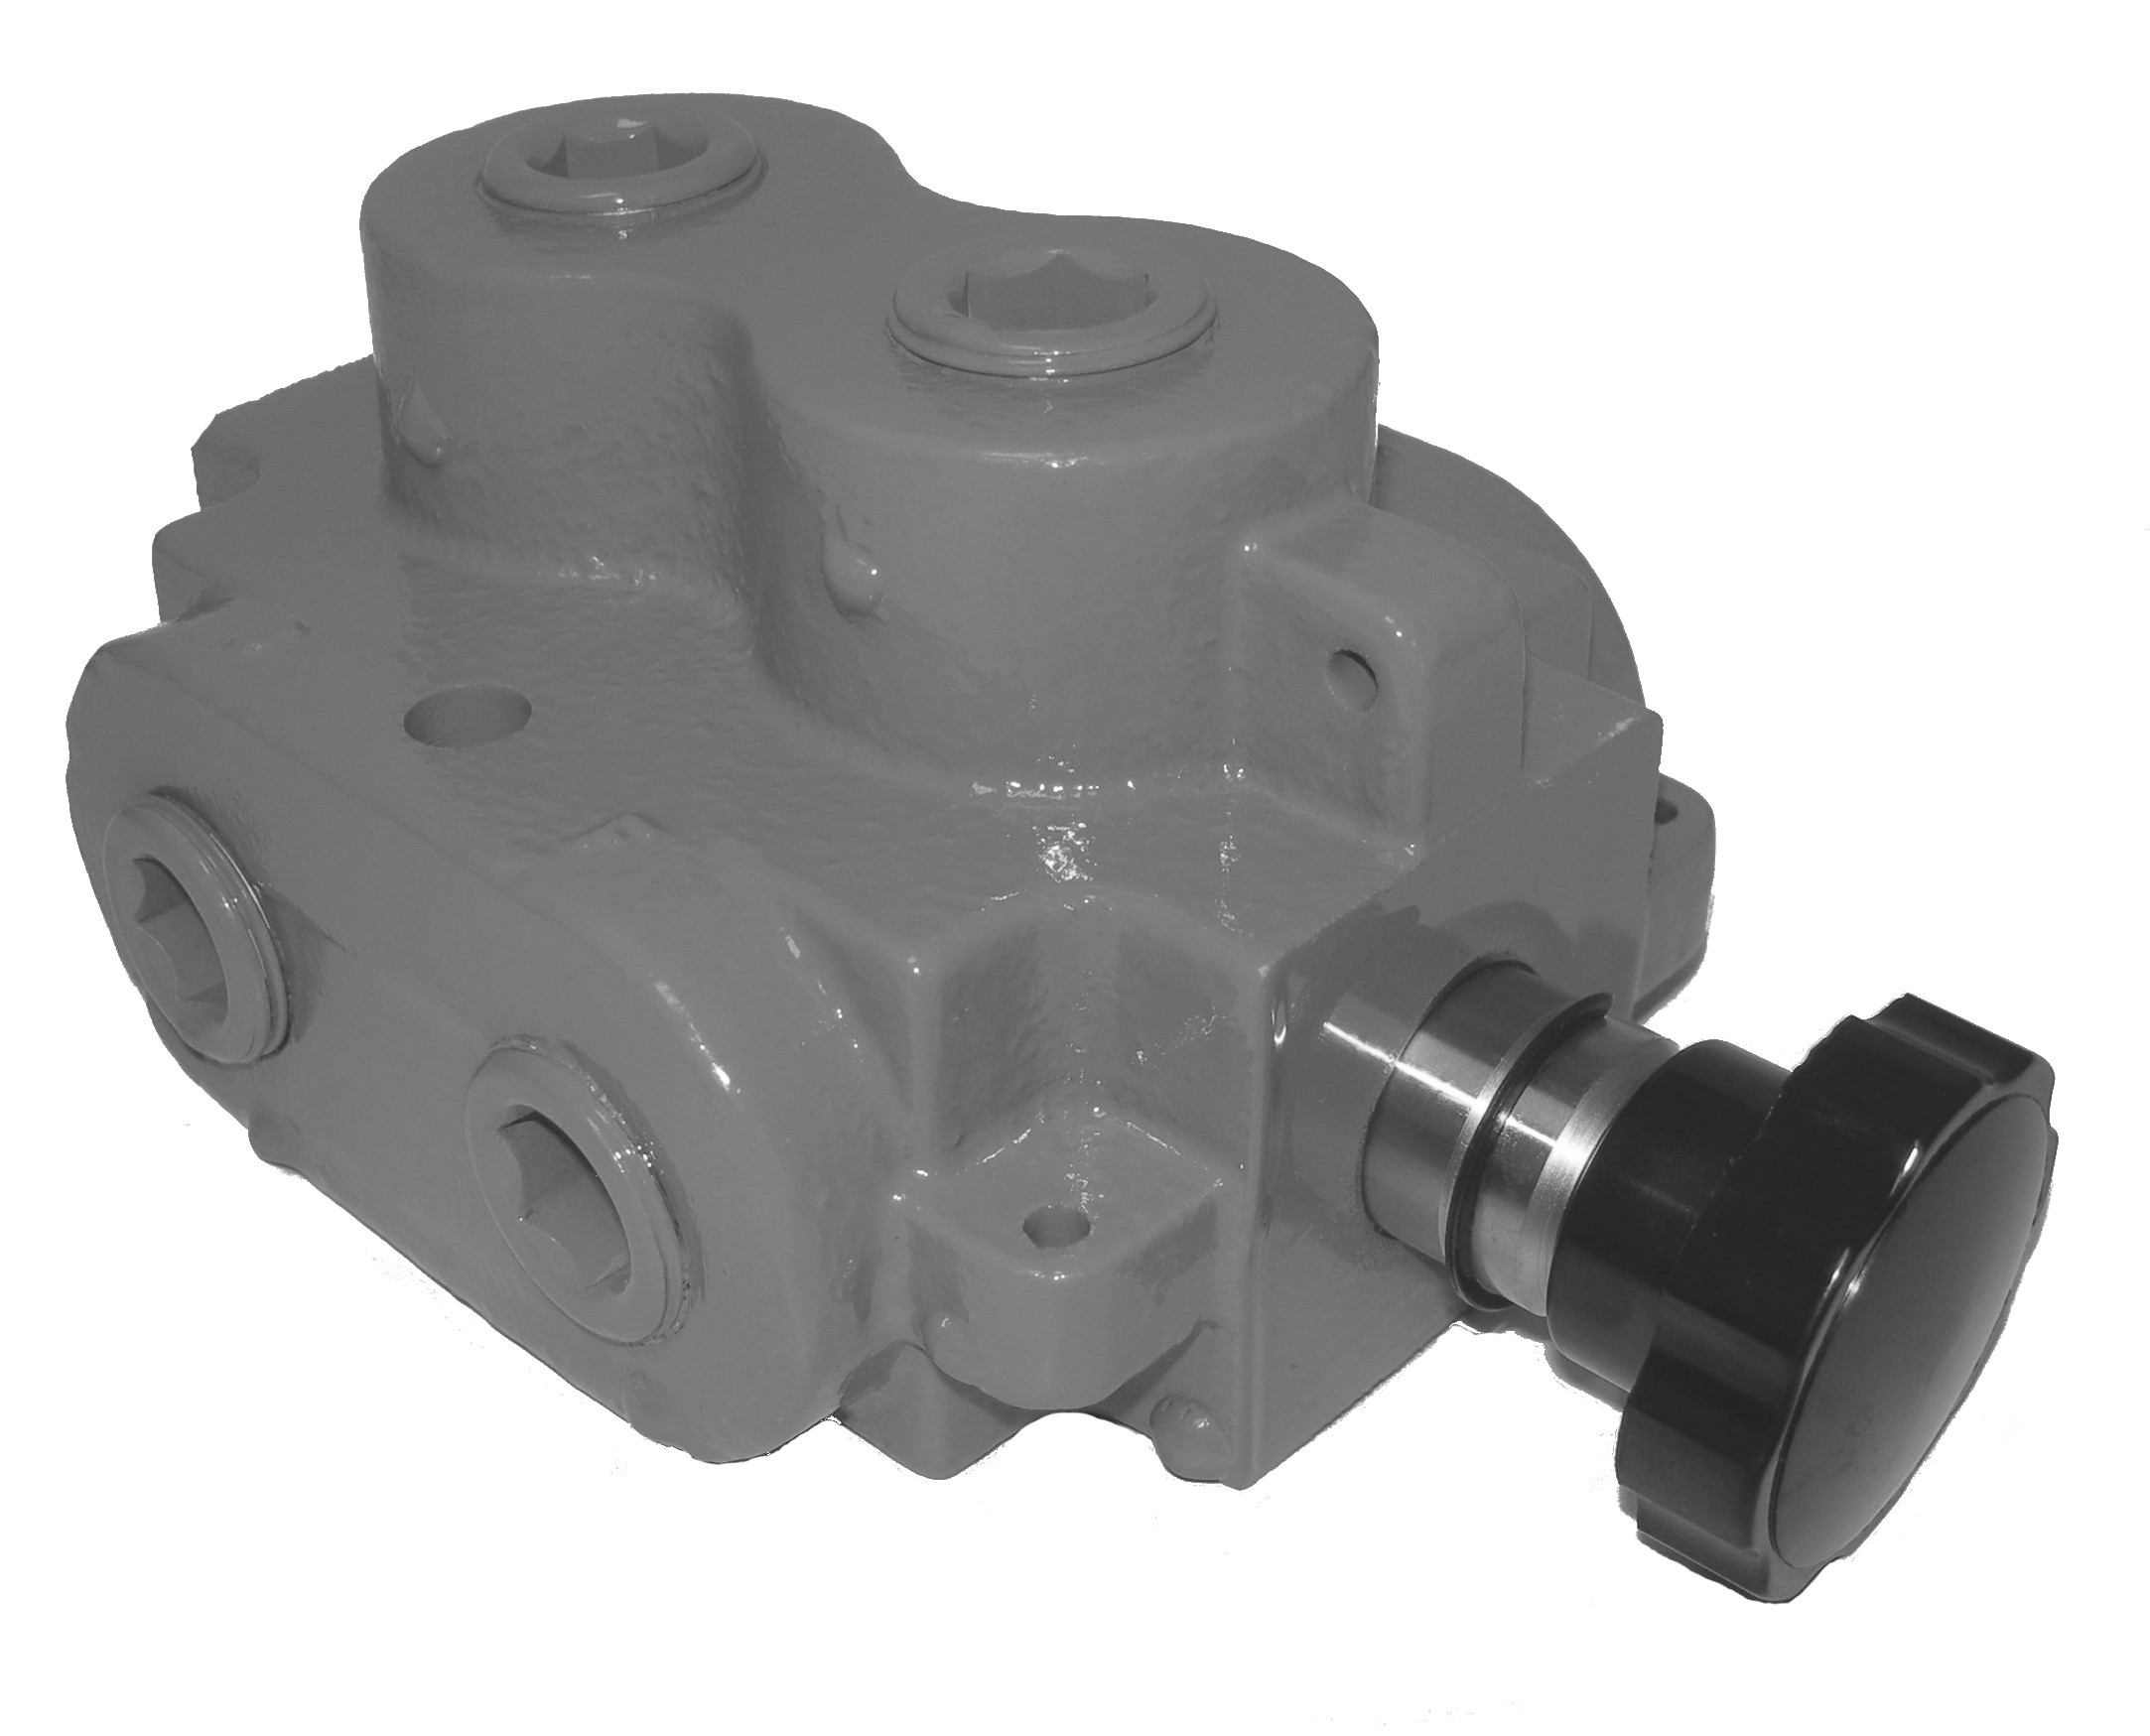 Prince Double Selector Valve Hydraulics Pneumatics And